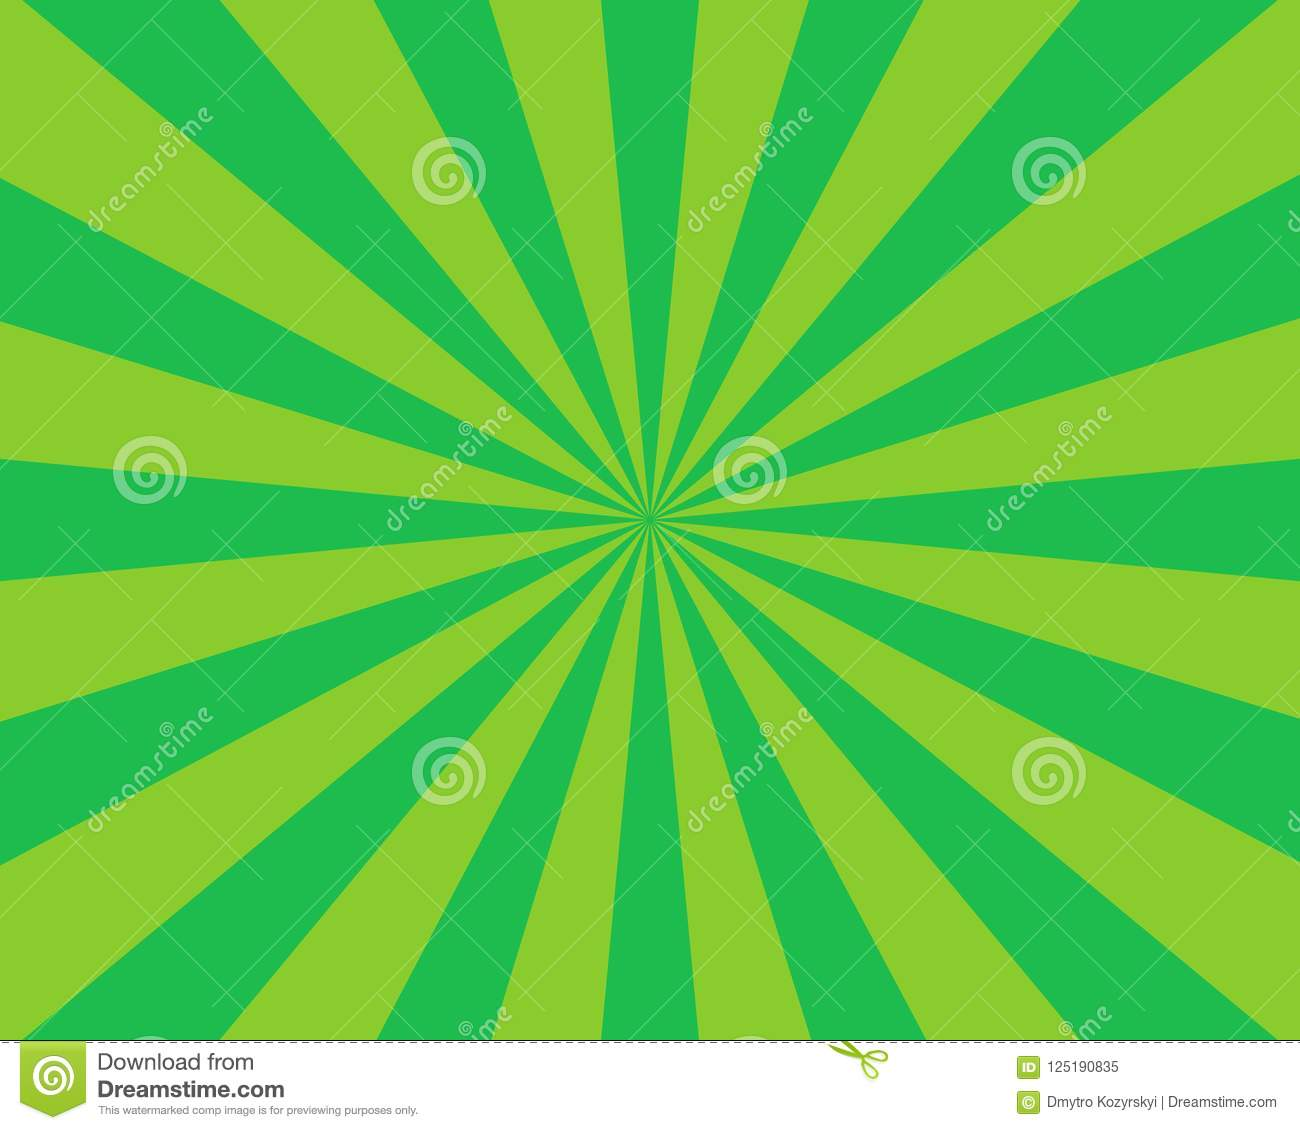 Download Rays Background Illustration For Your Bright Beams Design Sun Ray Theme Abstract Wallpaper